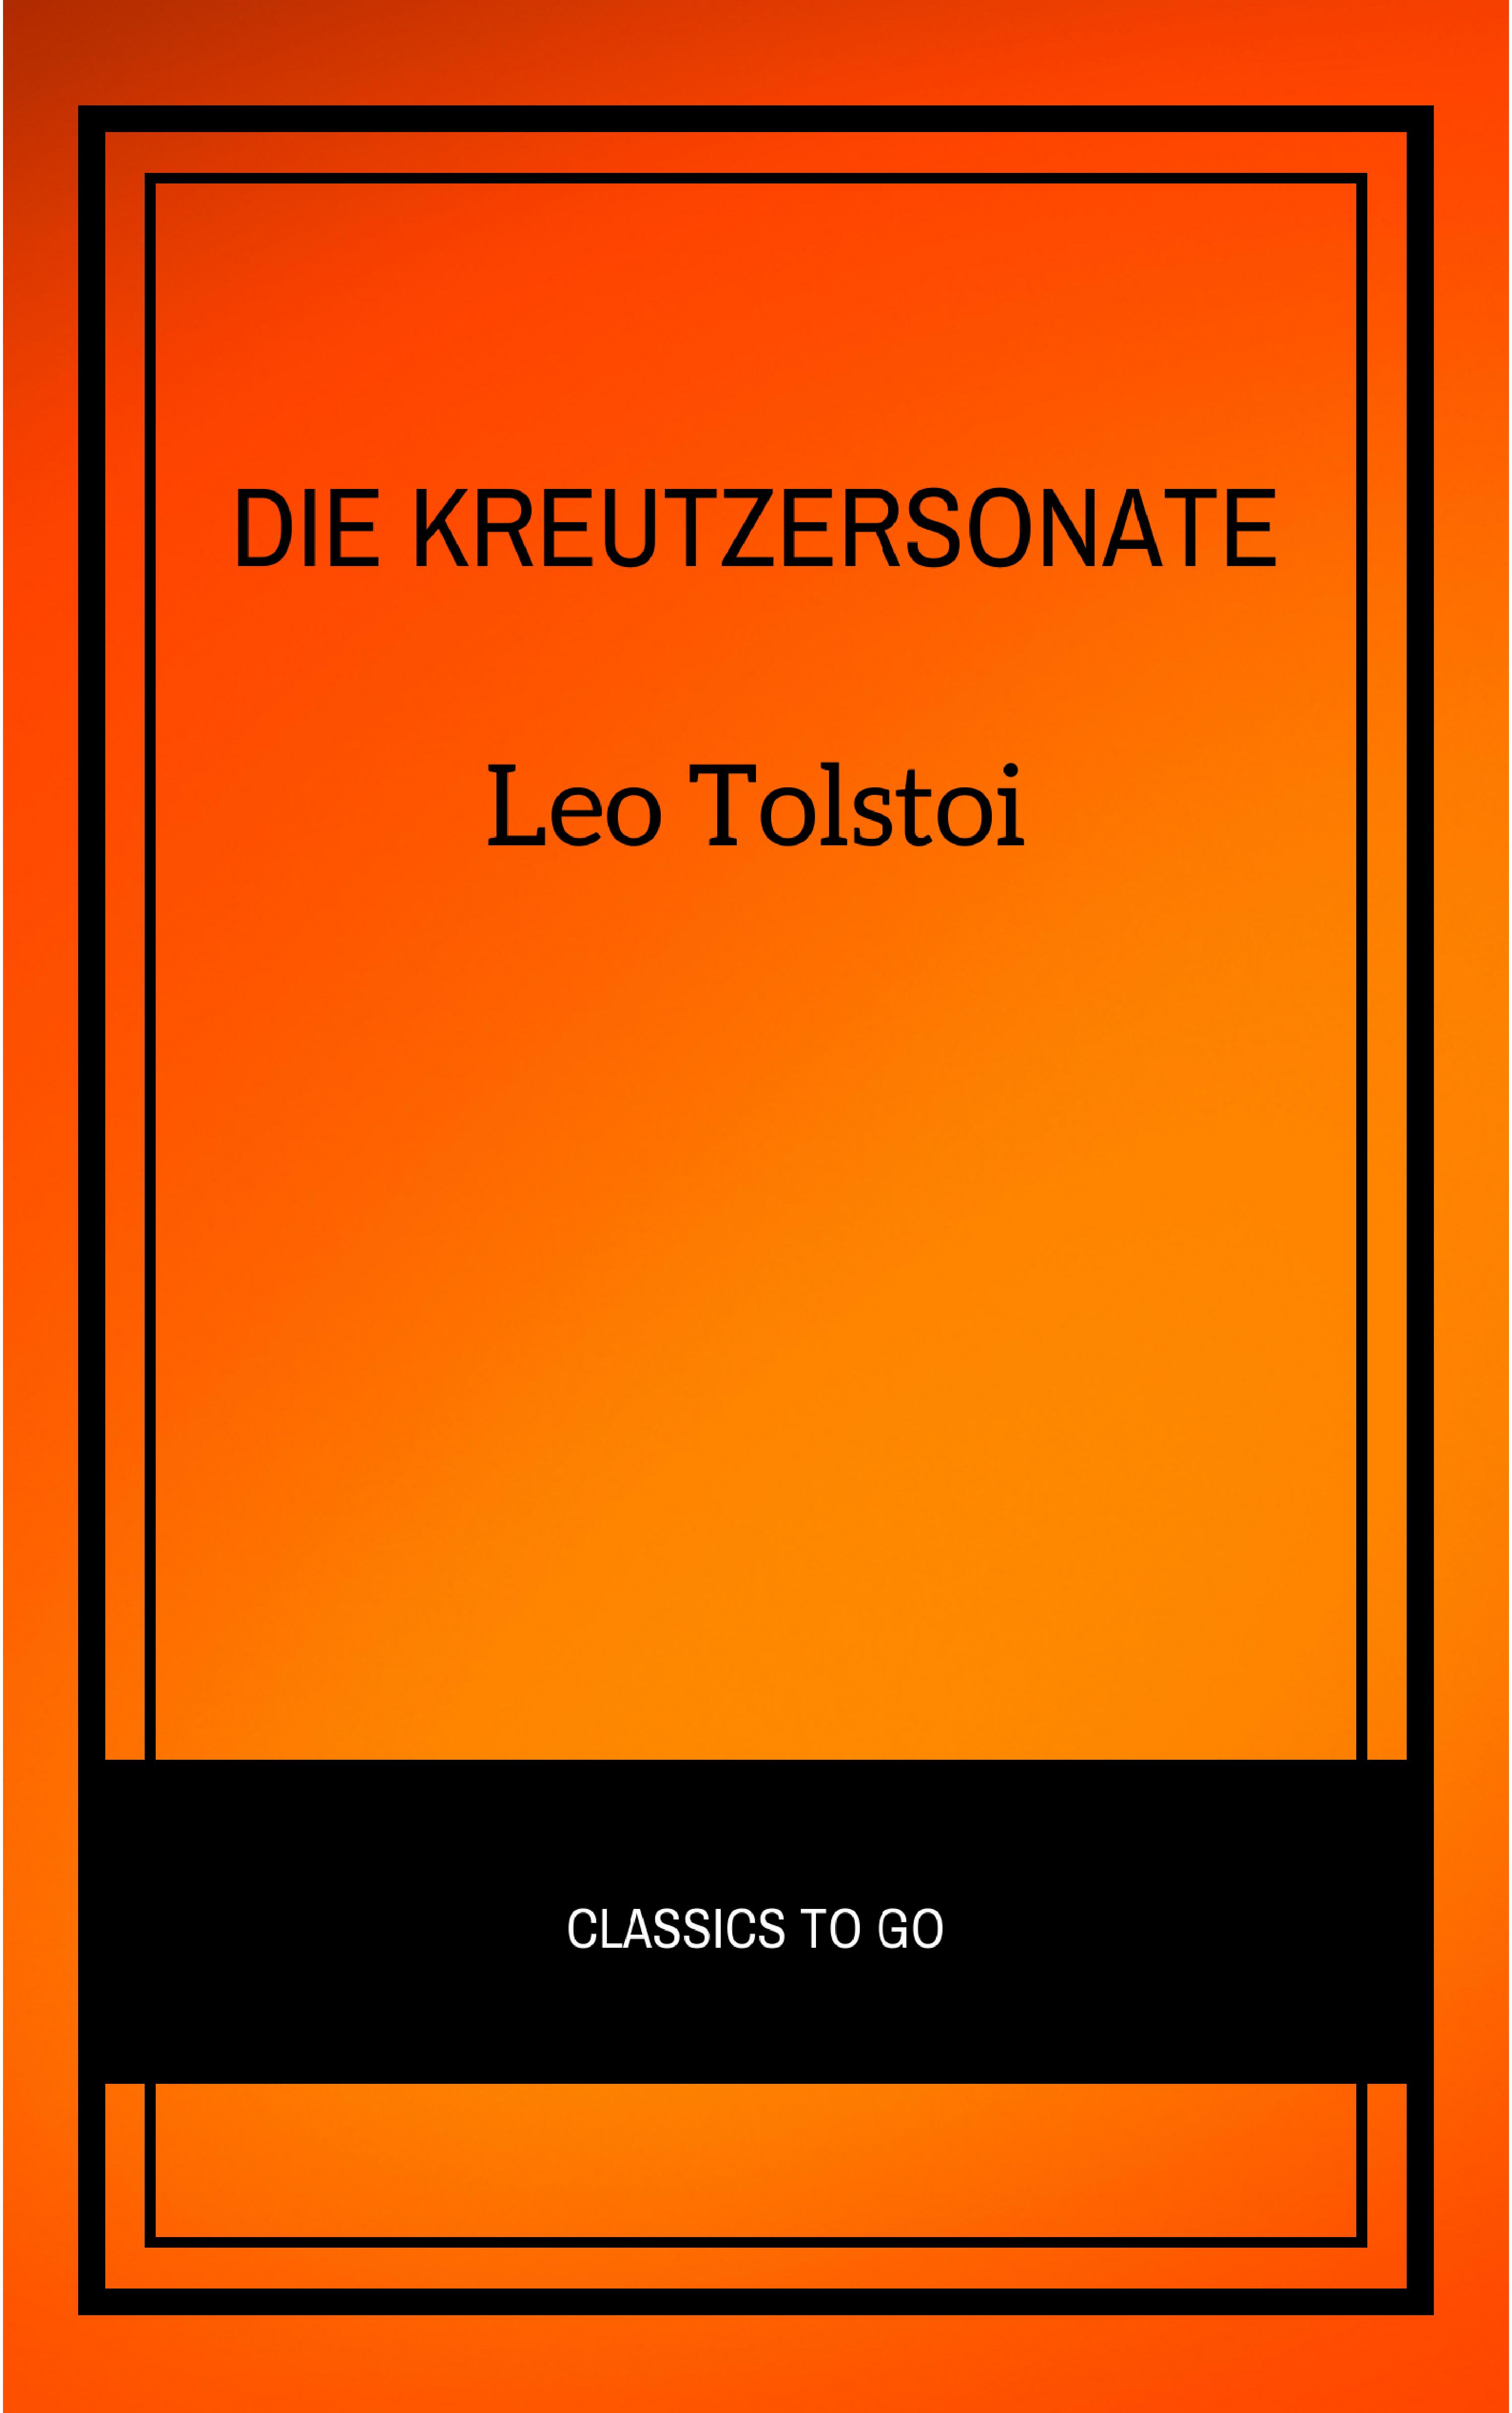 Leo Tolstoi Die Kreutzersonate лев толстой tolstoi for the young select tales from tolstoi